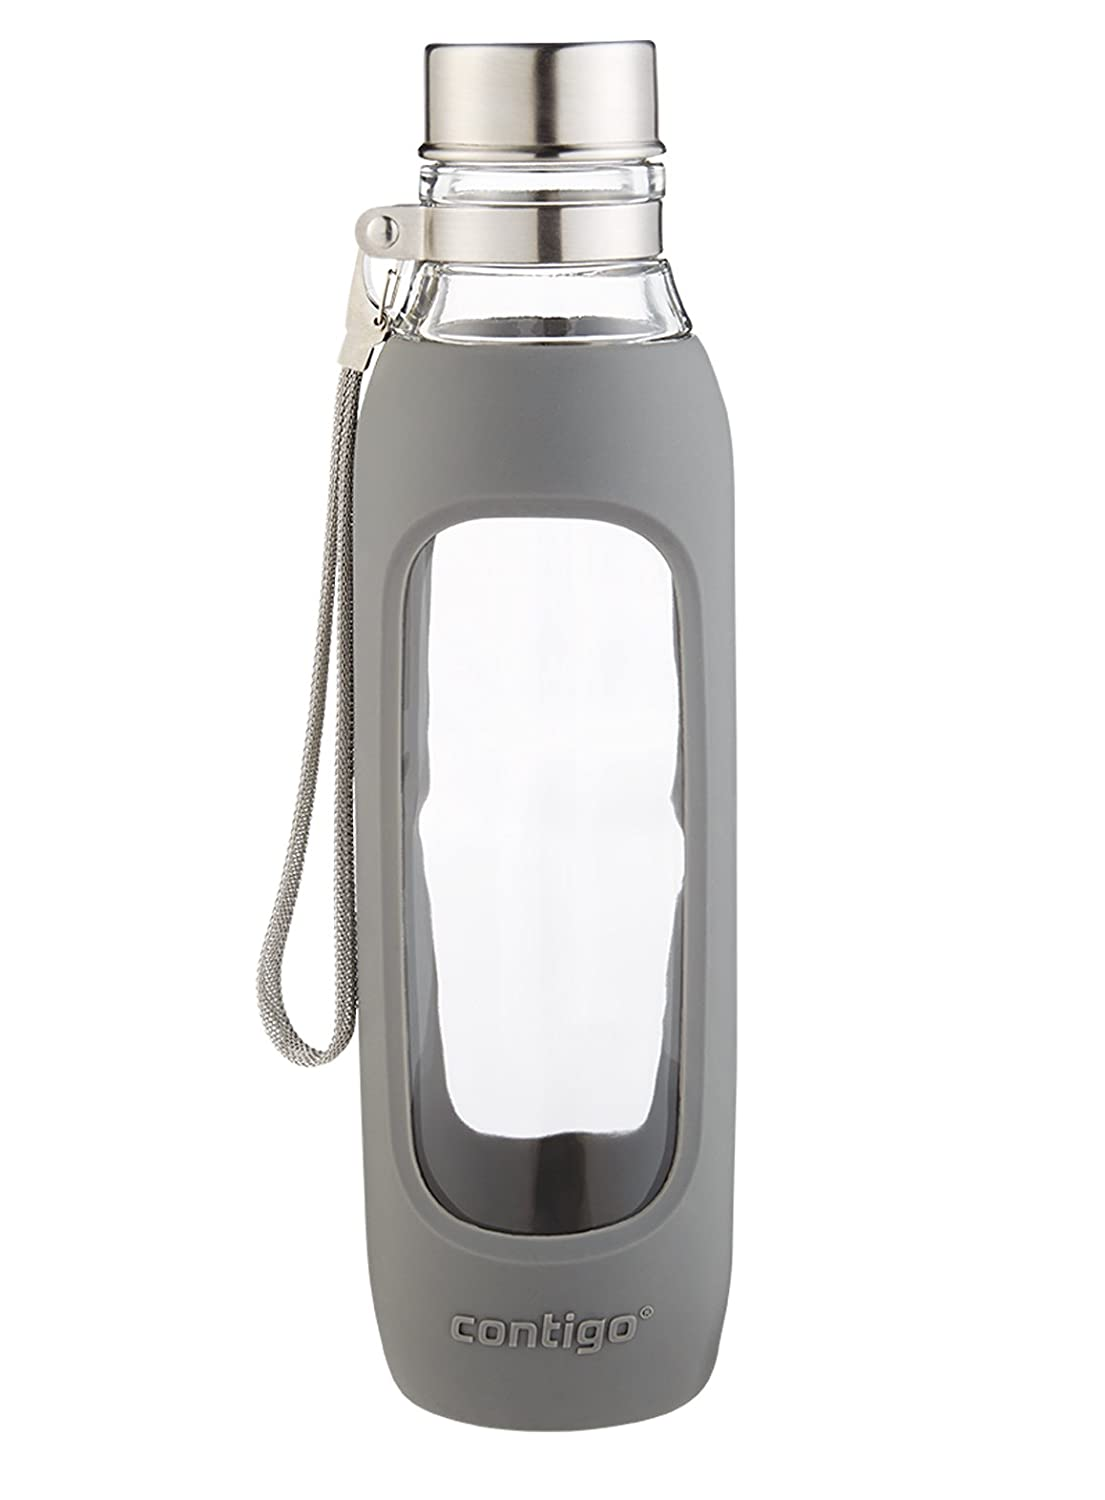 Radiant Orchid Contigo Purity Glass Water Bottle 20oz